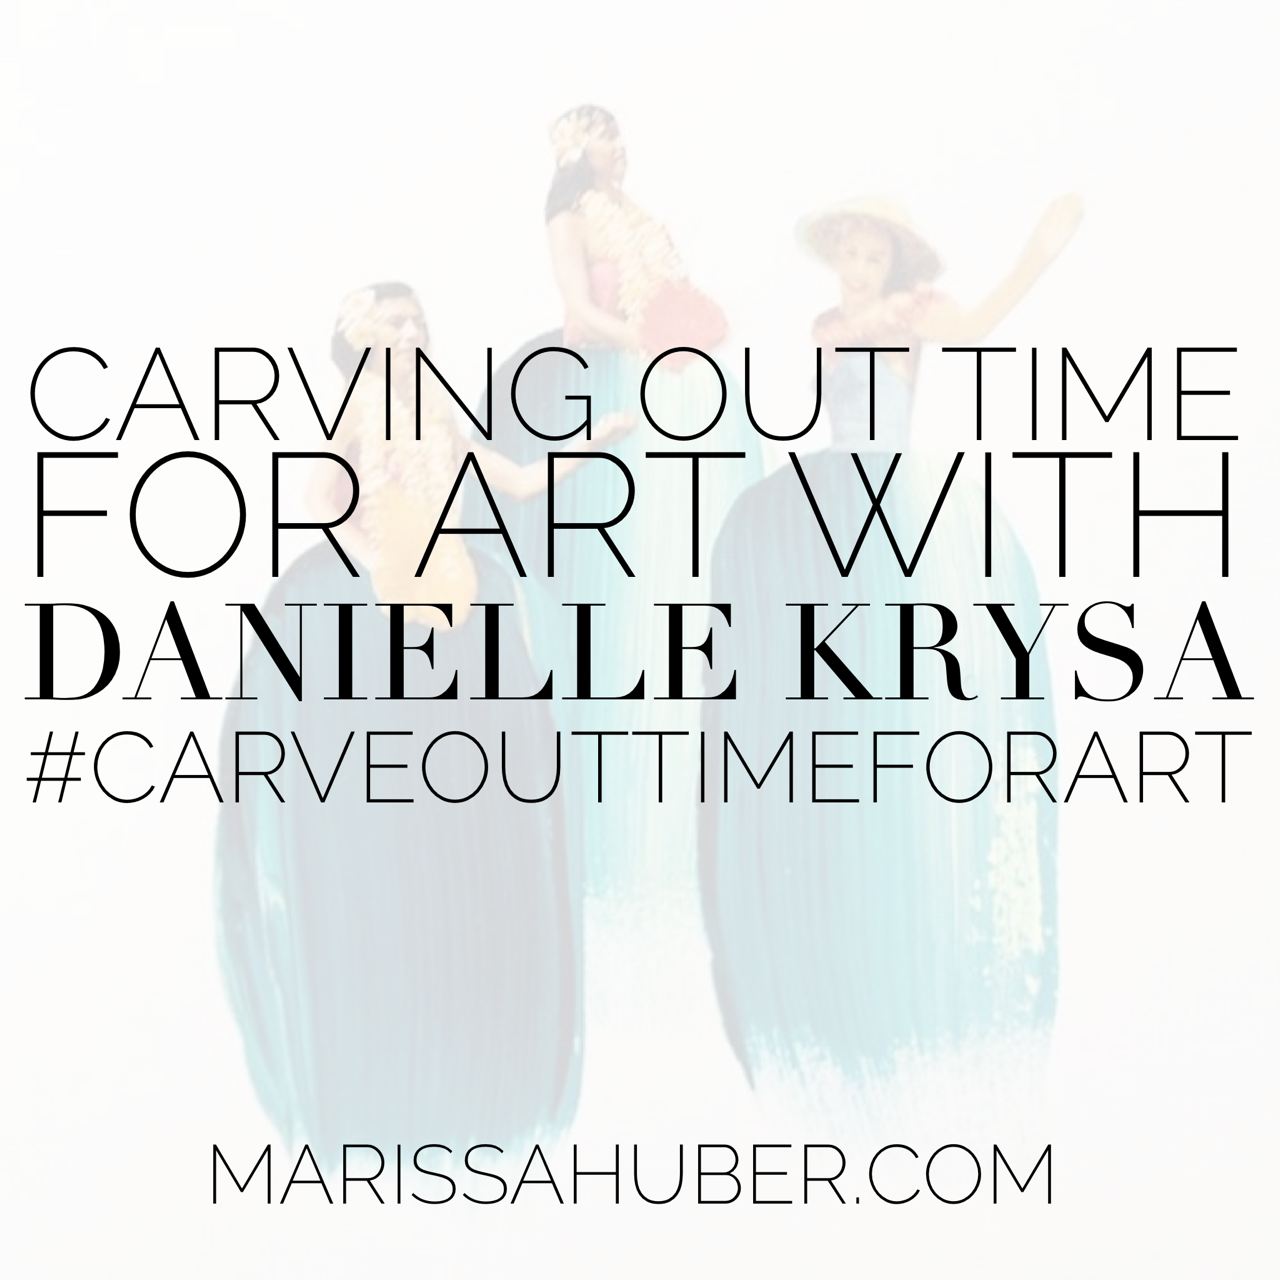 Carve-Out-Time-For-Art-with-Danielle-Krysa.png